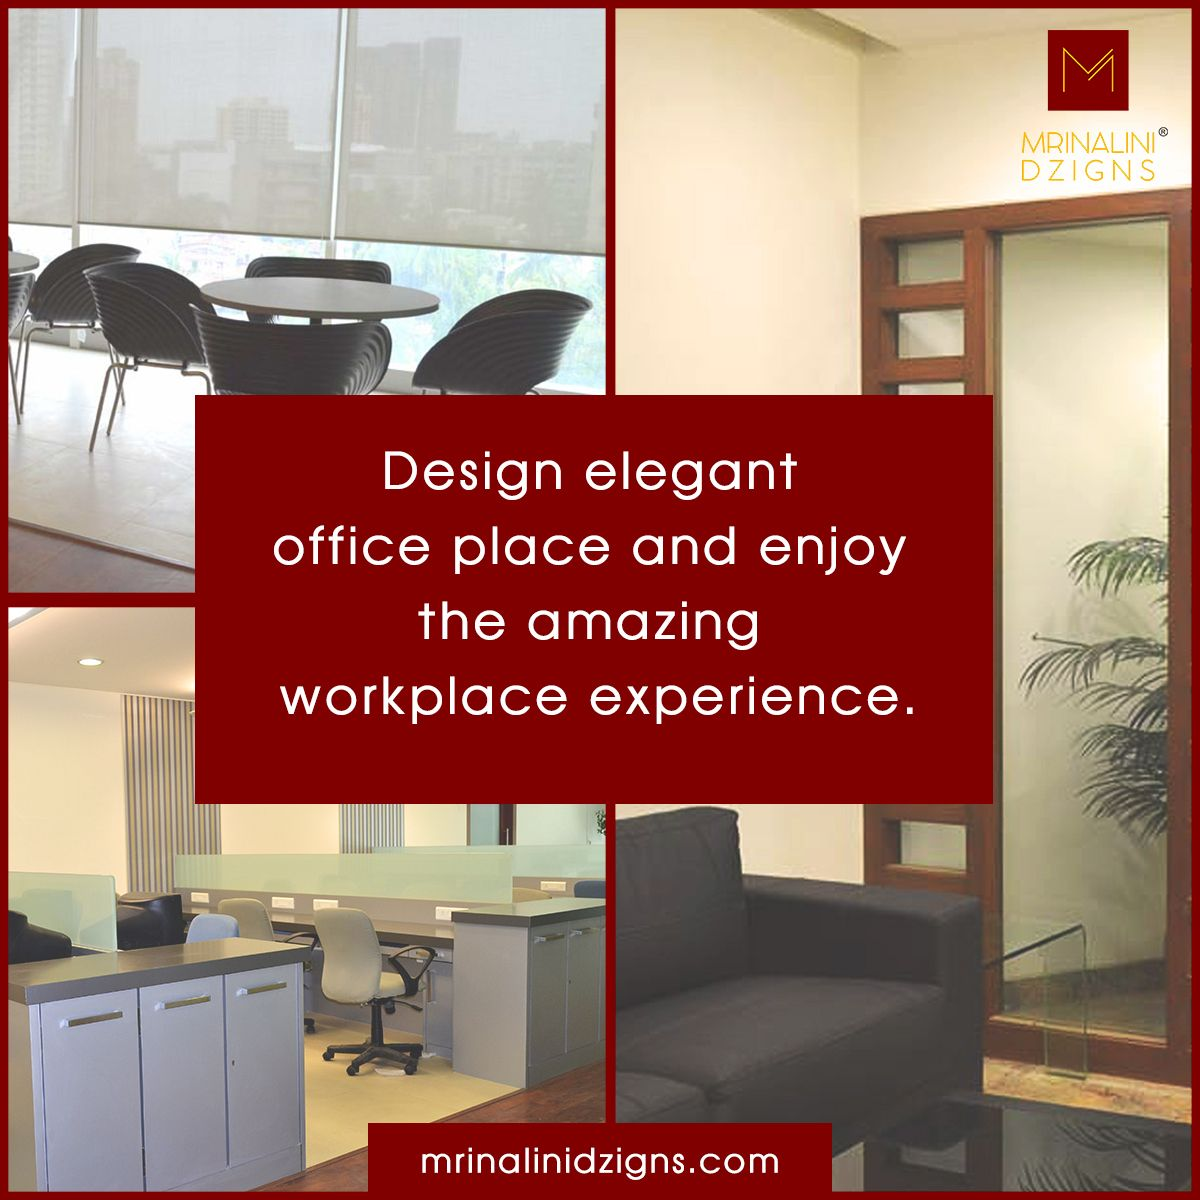 Got A New Office Space? Mrinalini Dzigns Will Help You In Designing Your  New Work